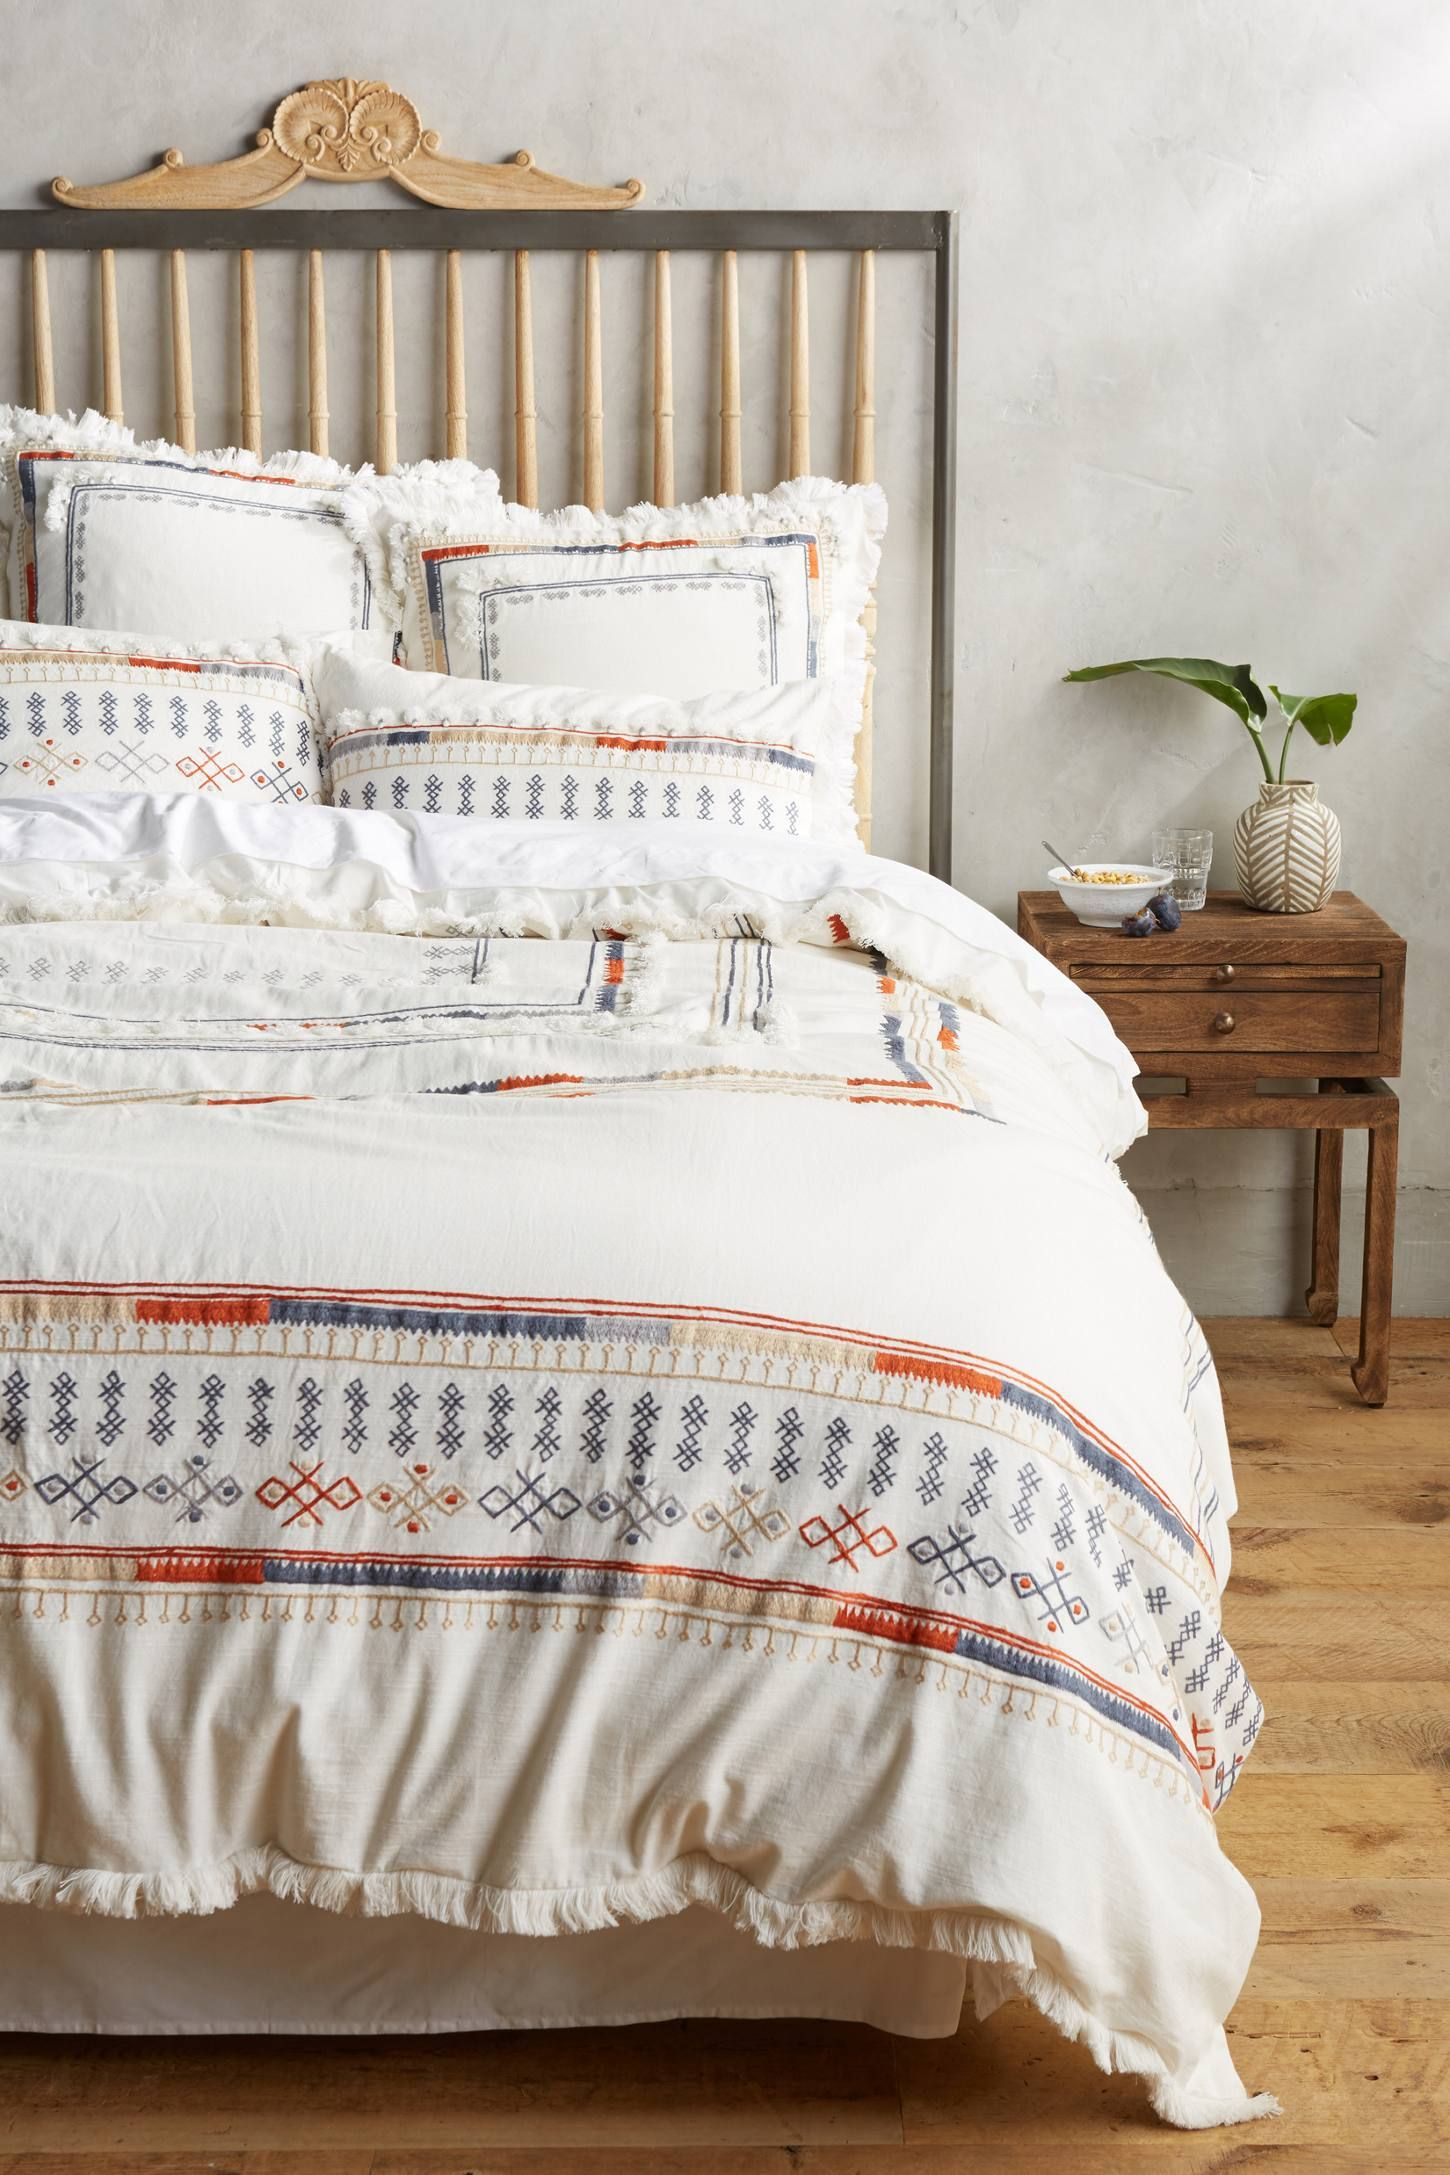 Shop the Kessabine Duvet and more Anthropologie at Anthropologie